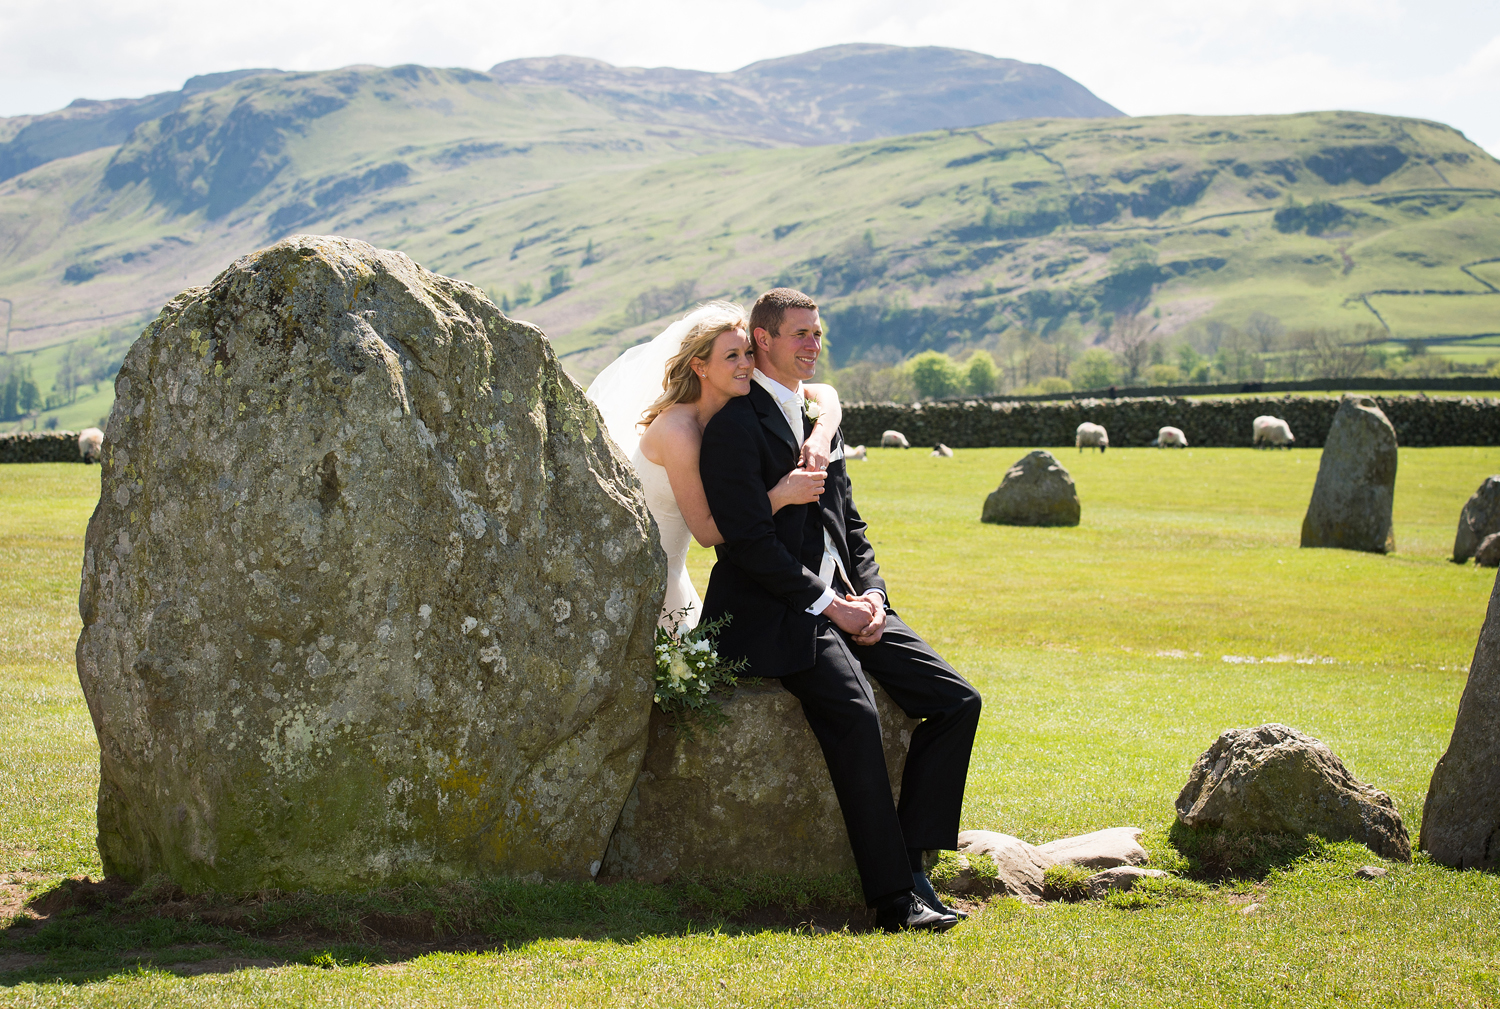 Castlerigg stone circle was a breathtaking back-drop for Rebecca & Carrick's wedding photographs.